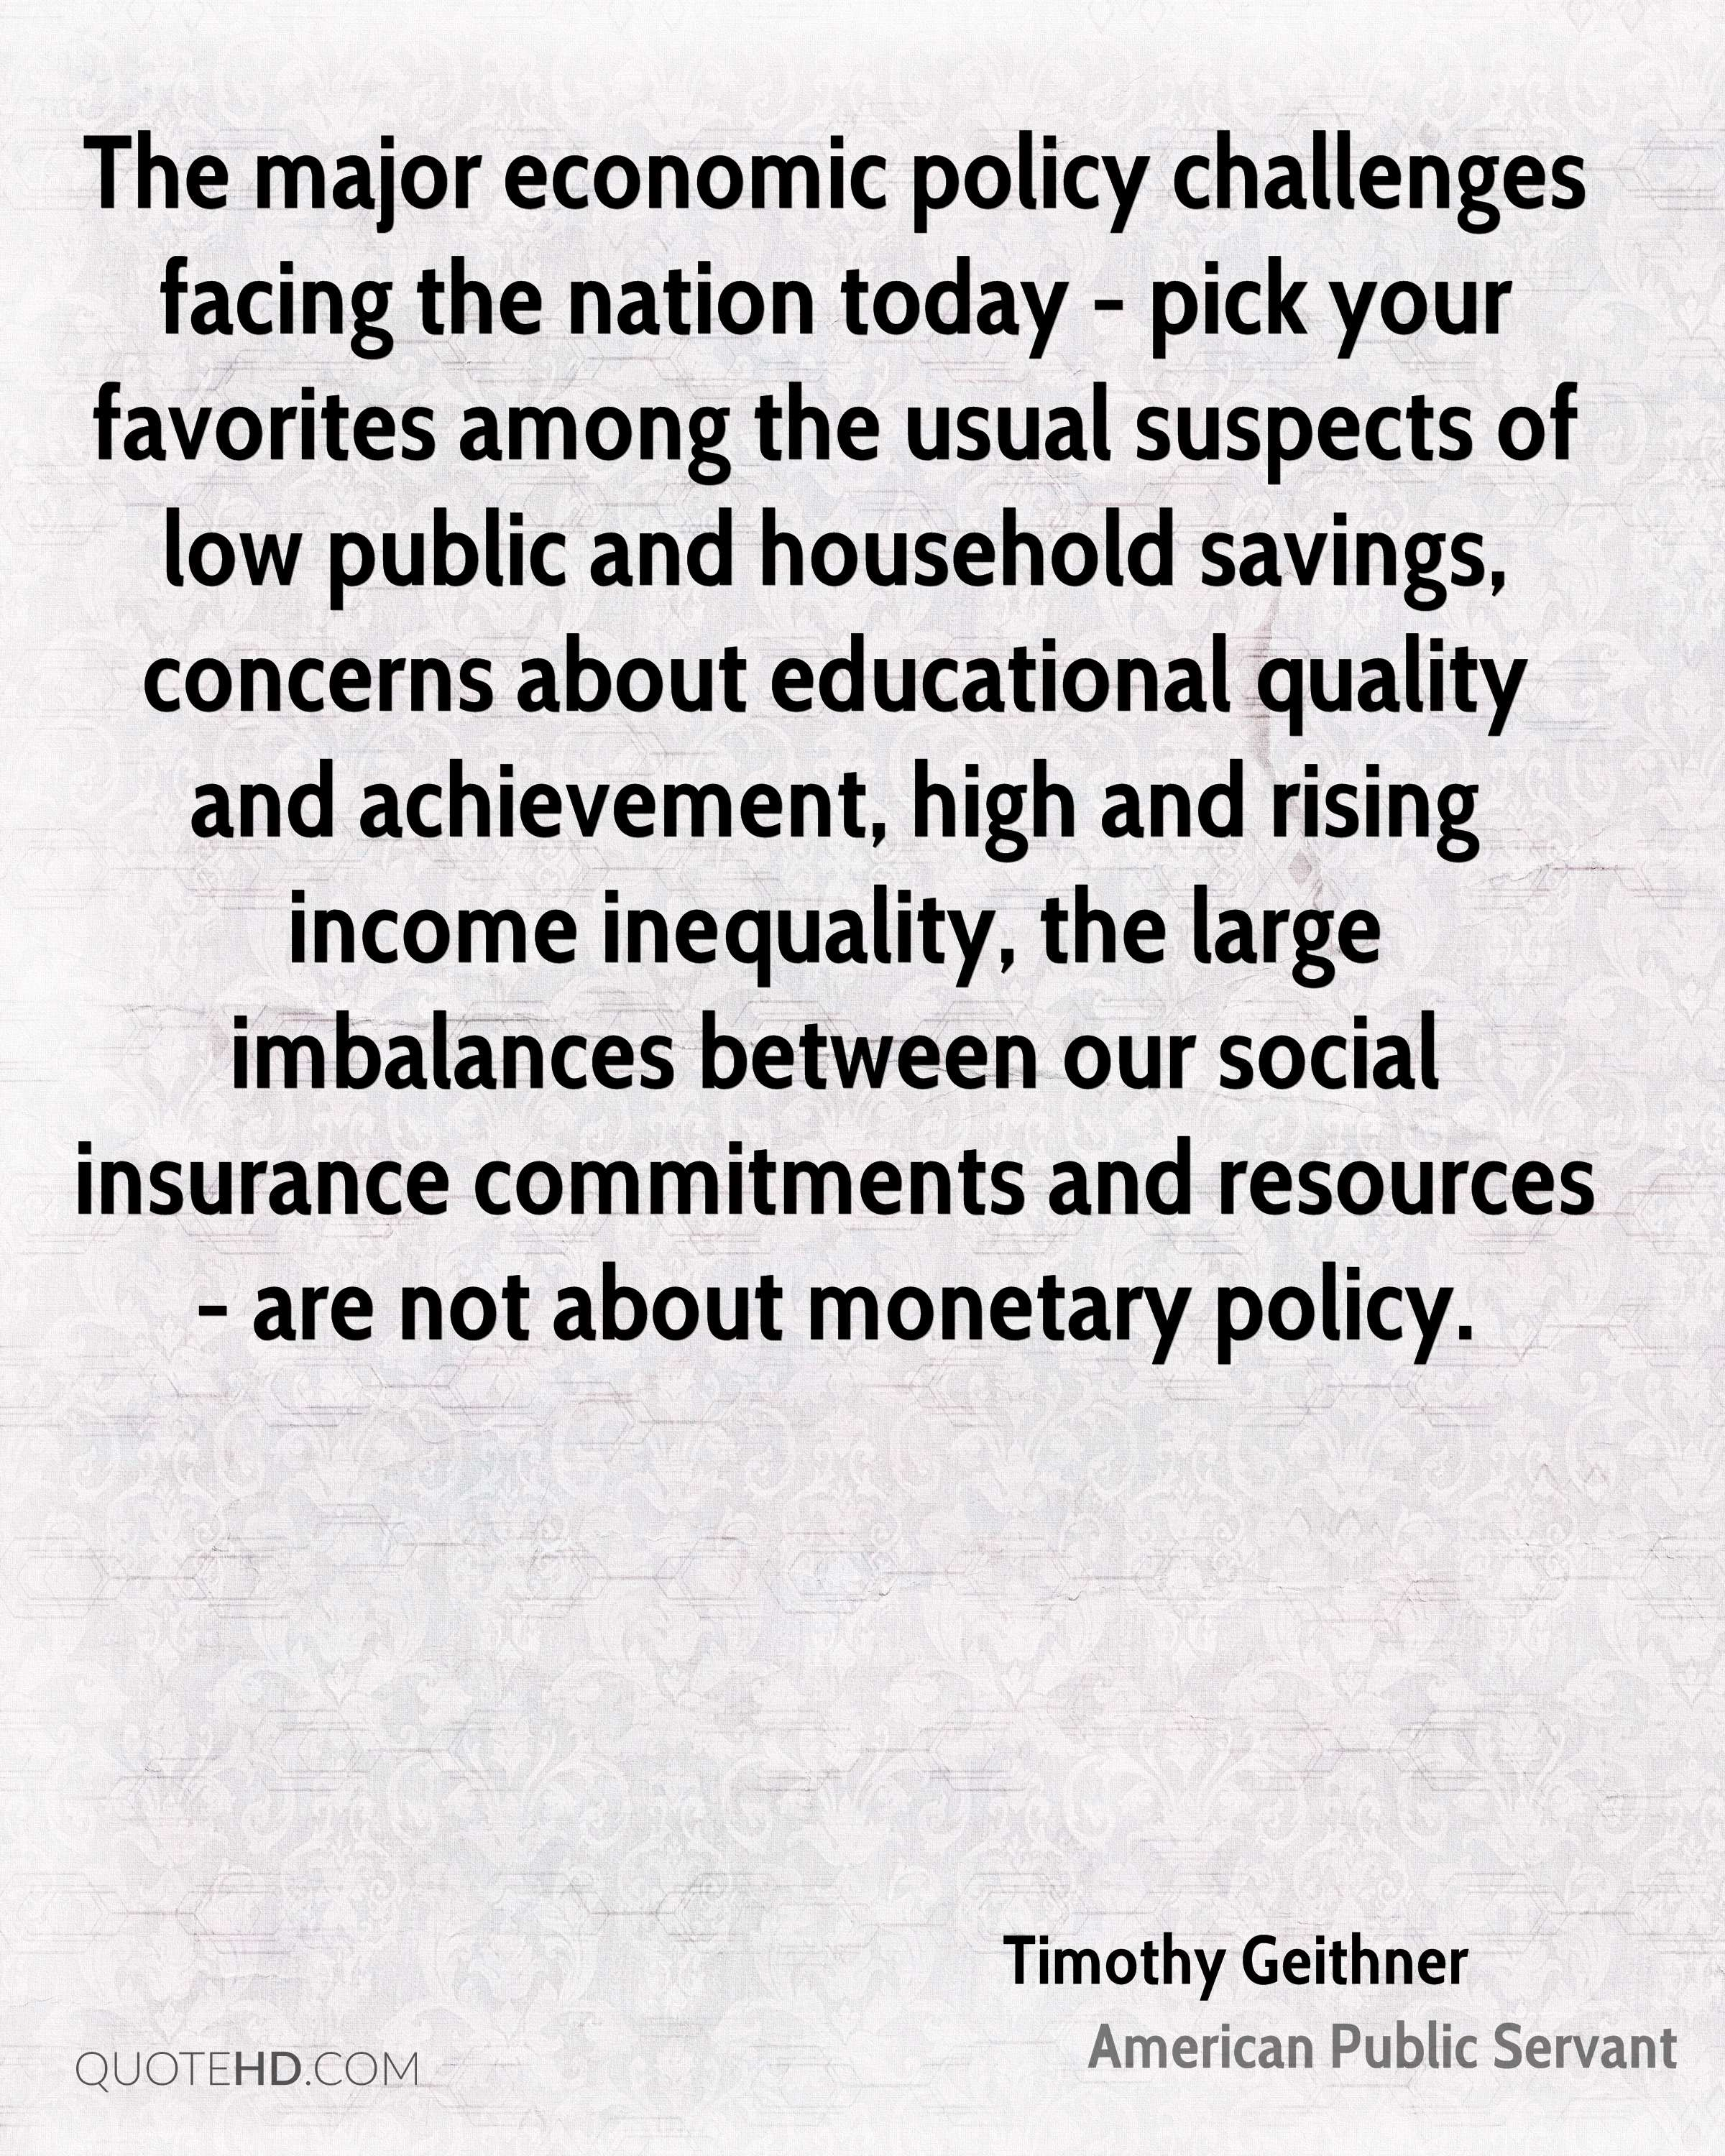 The major economic policy challenges facing the nation today - pick your favorites among the usual suspects of low public and household savings, concerns about educational quality and achievement, high and rising income inequality, the large imbalances between our social insurance commitments and resources - are not about monetary policy.